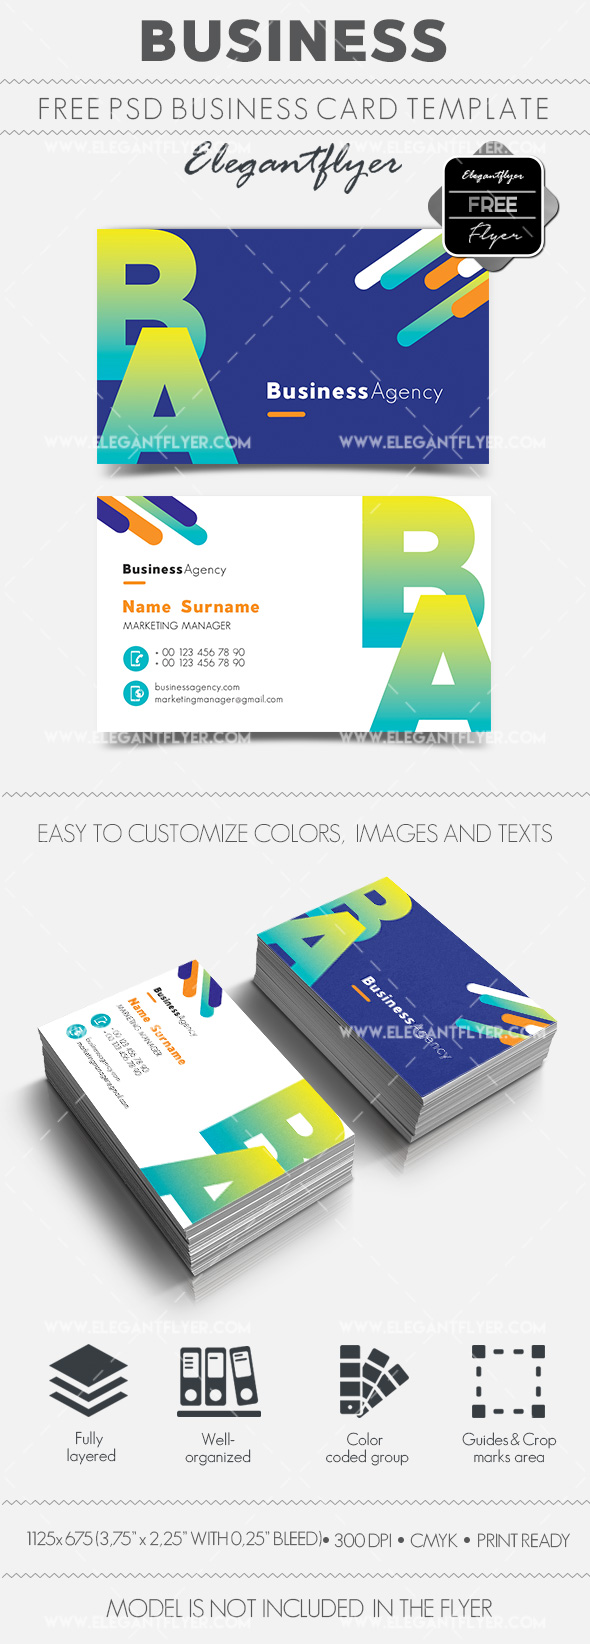 Free Business Cards Designs